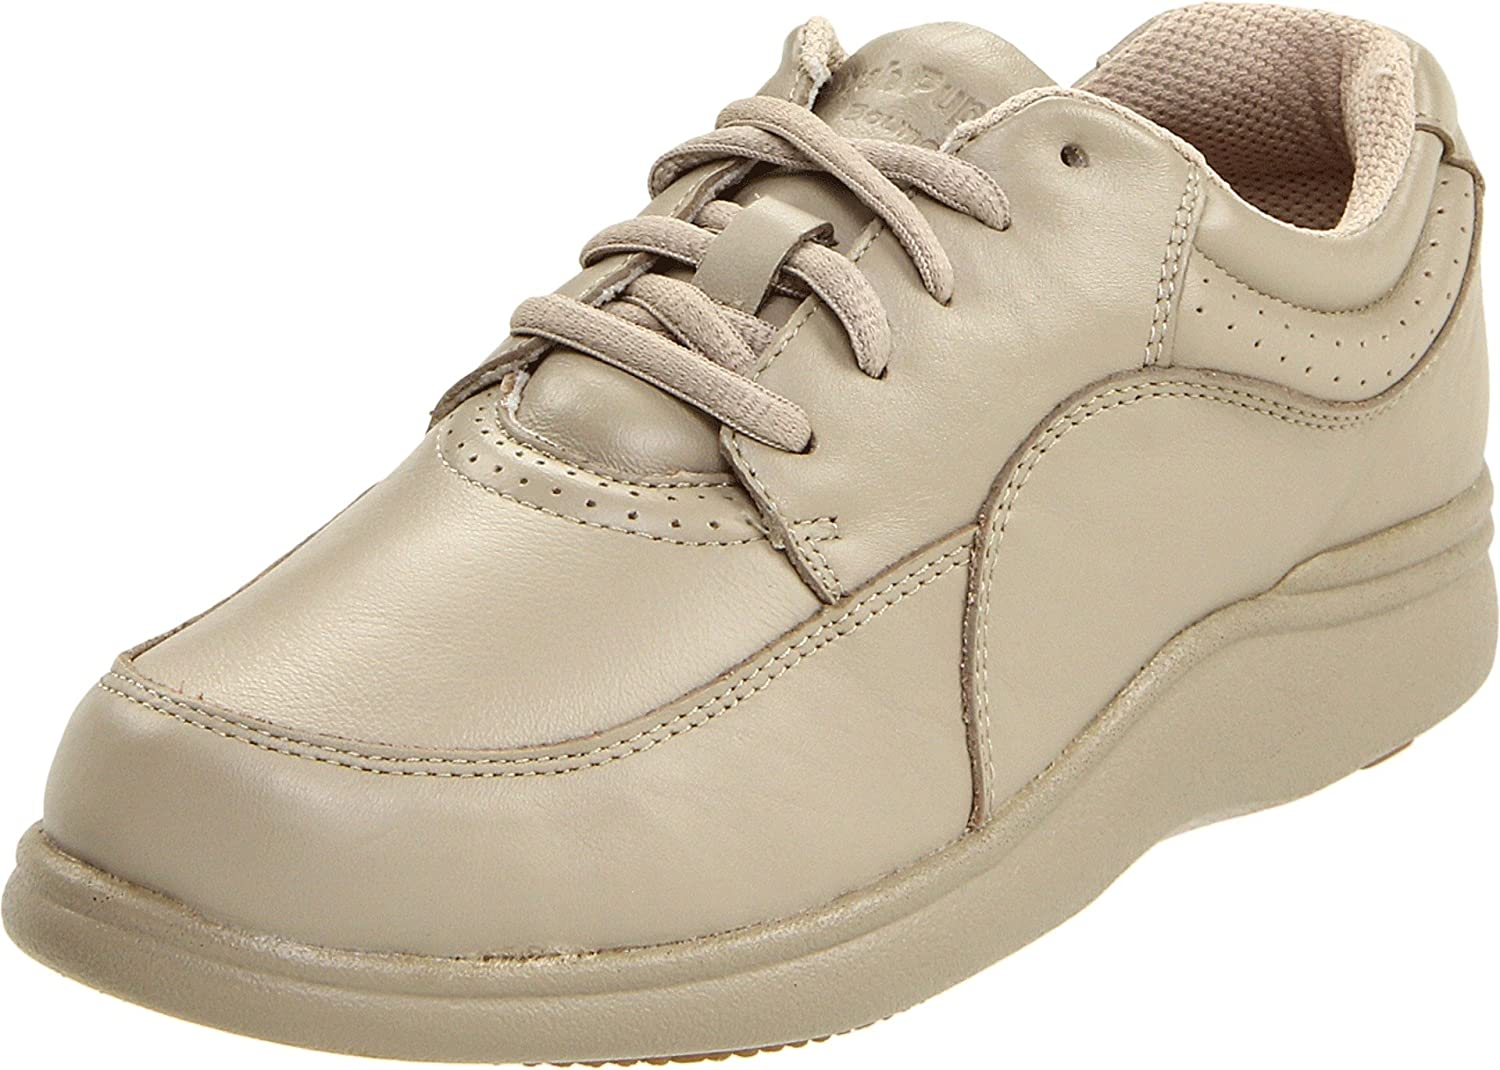 Hush Puppies Women's Power Walker Sneaker B001AWYDPA 7.5 W US|Taupe